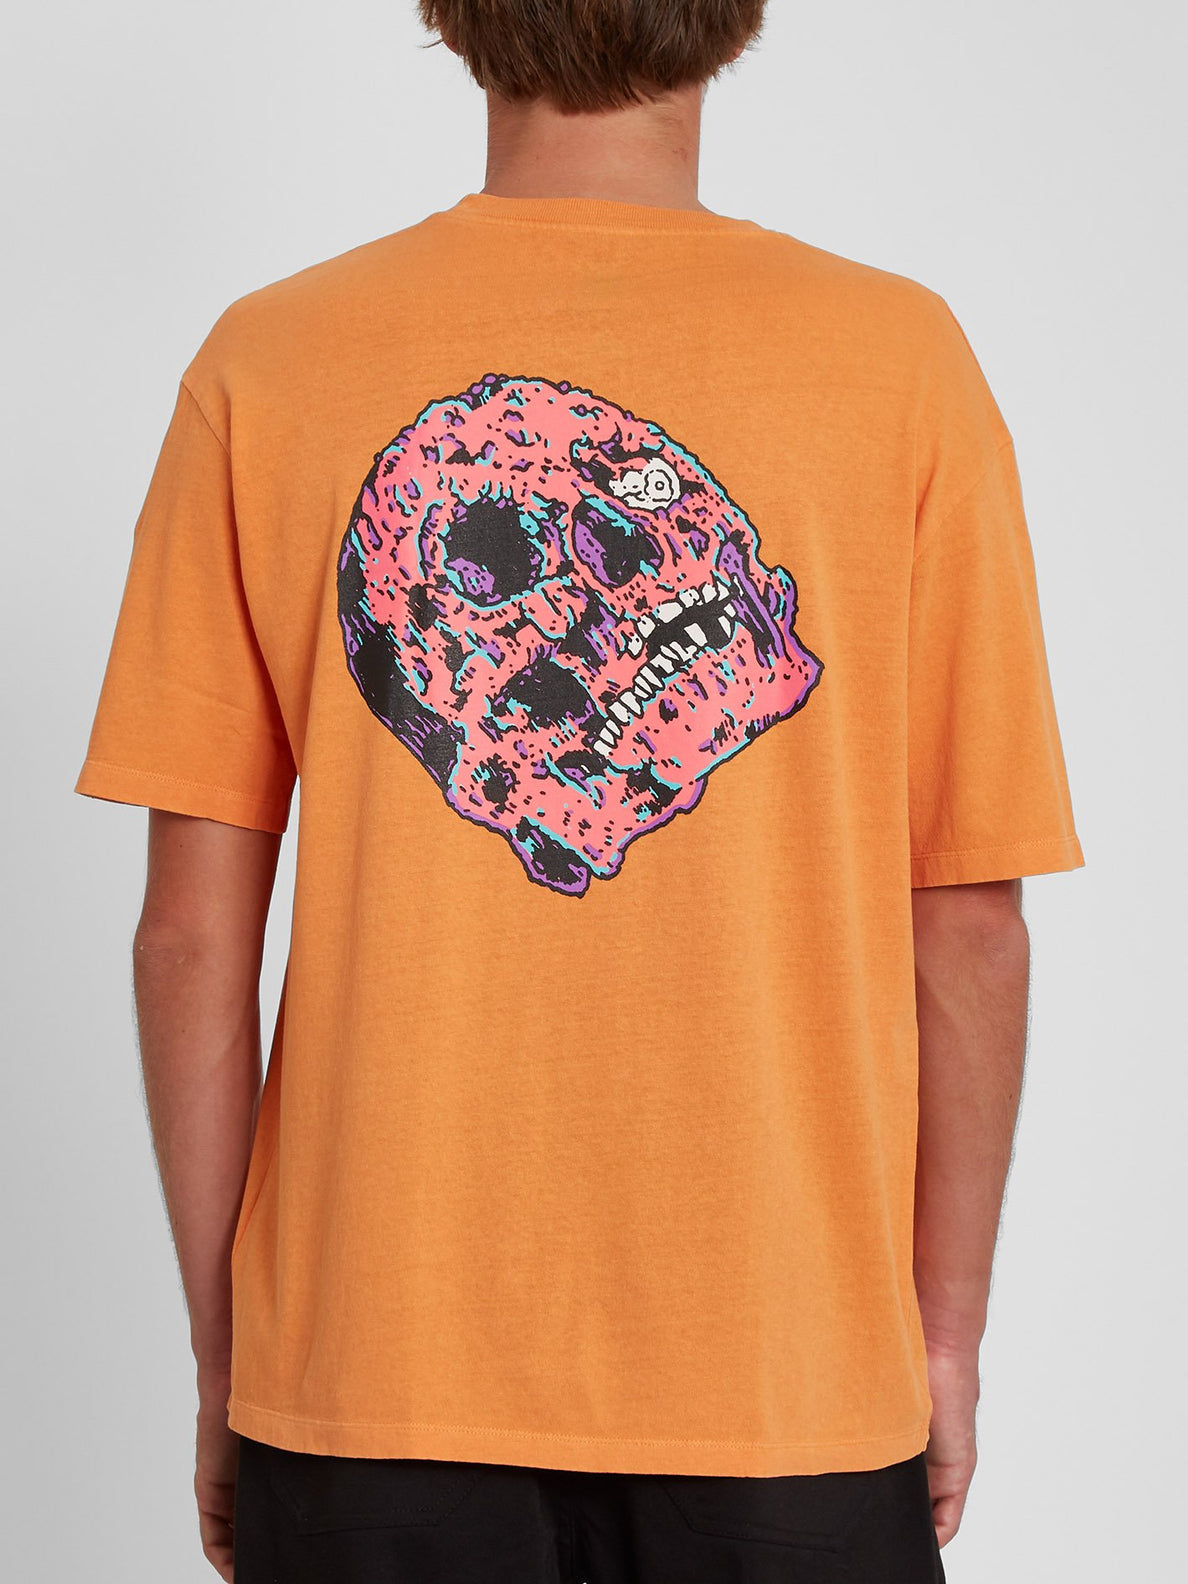 Spacegoolz T-shirt - BRIGHT MARIGOLD (A4342005_BMG) [B]